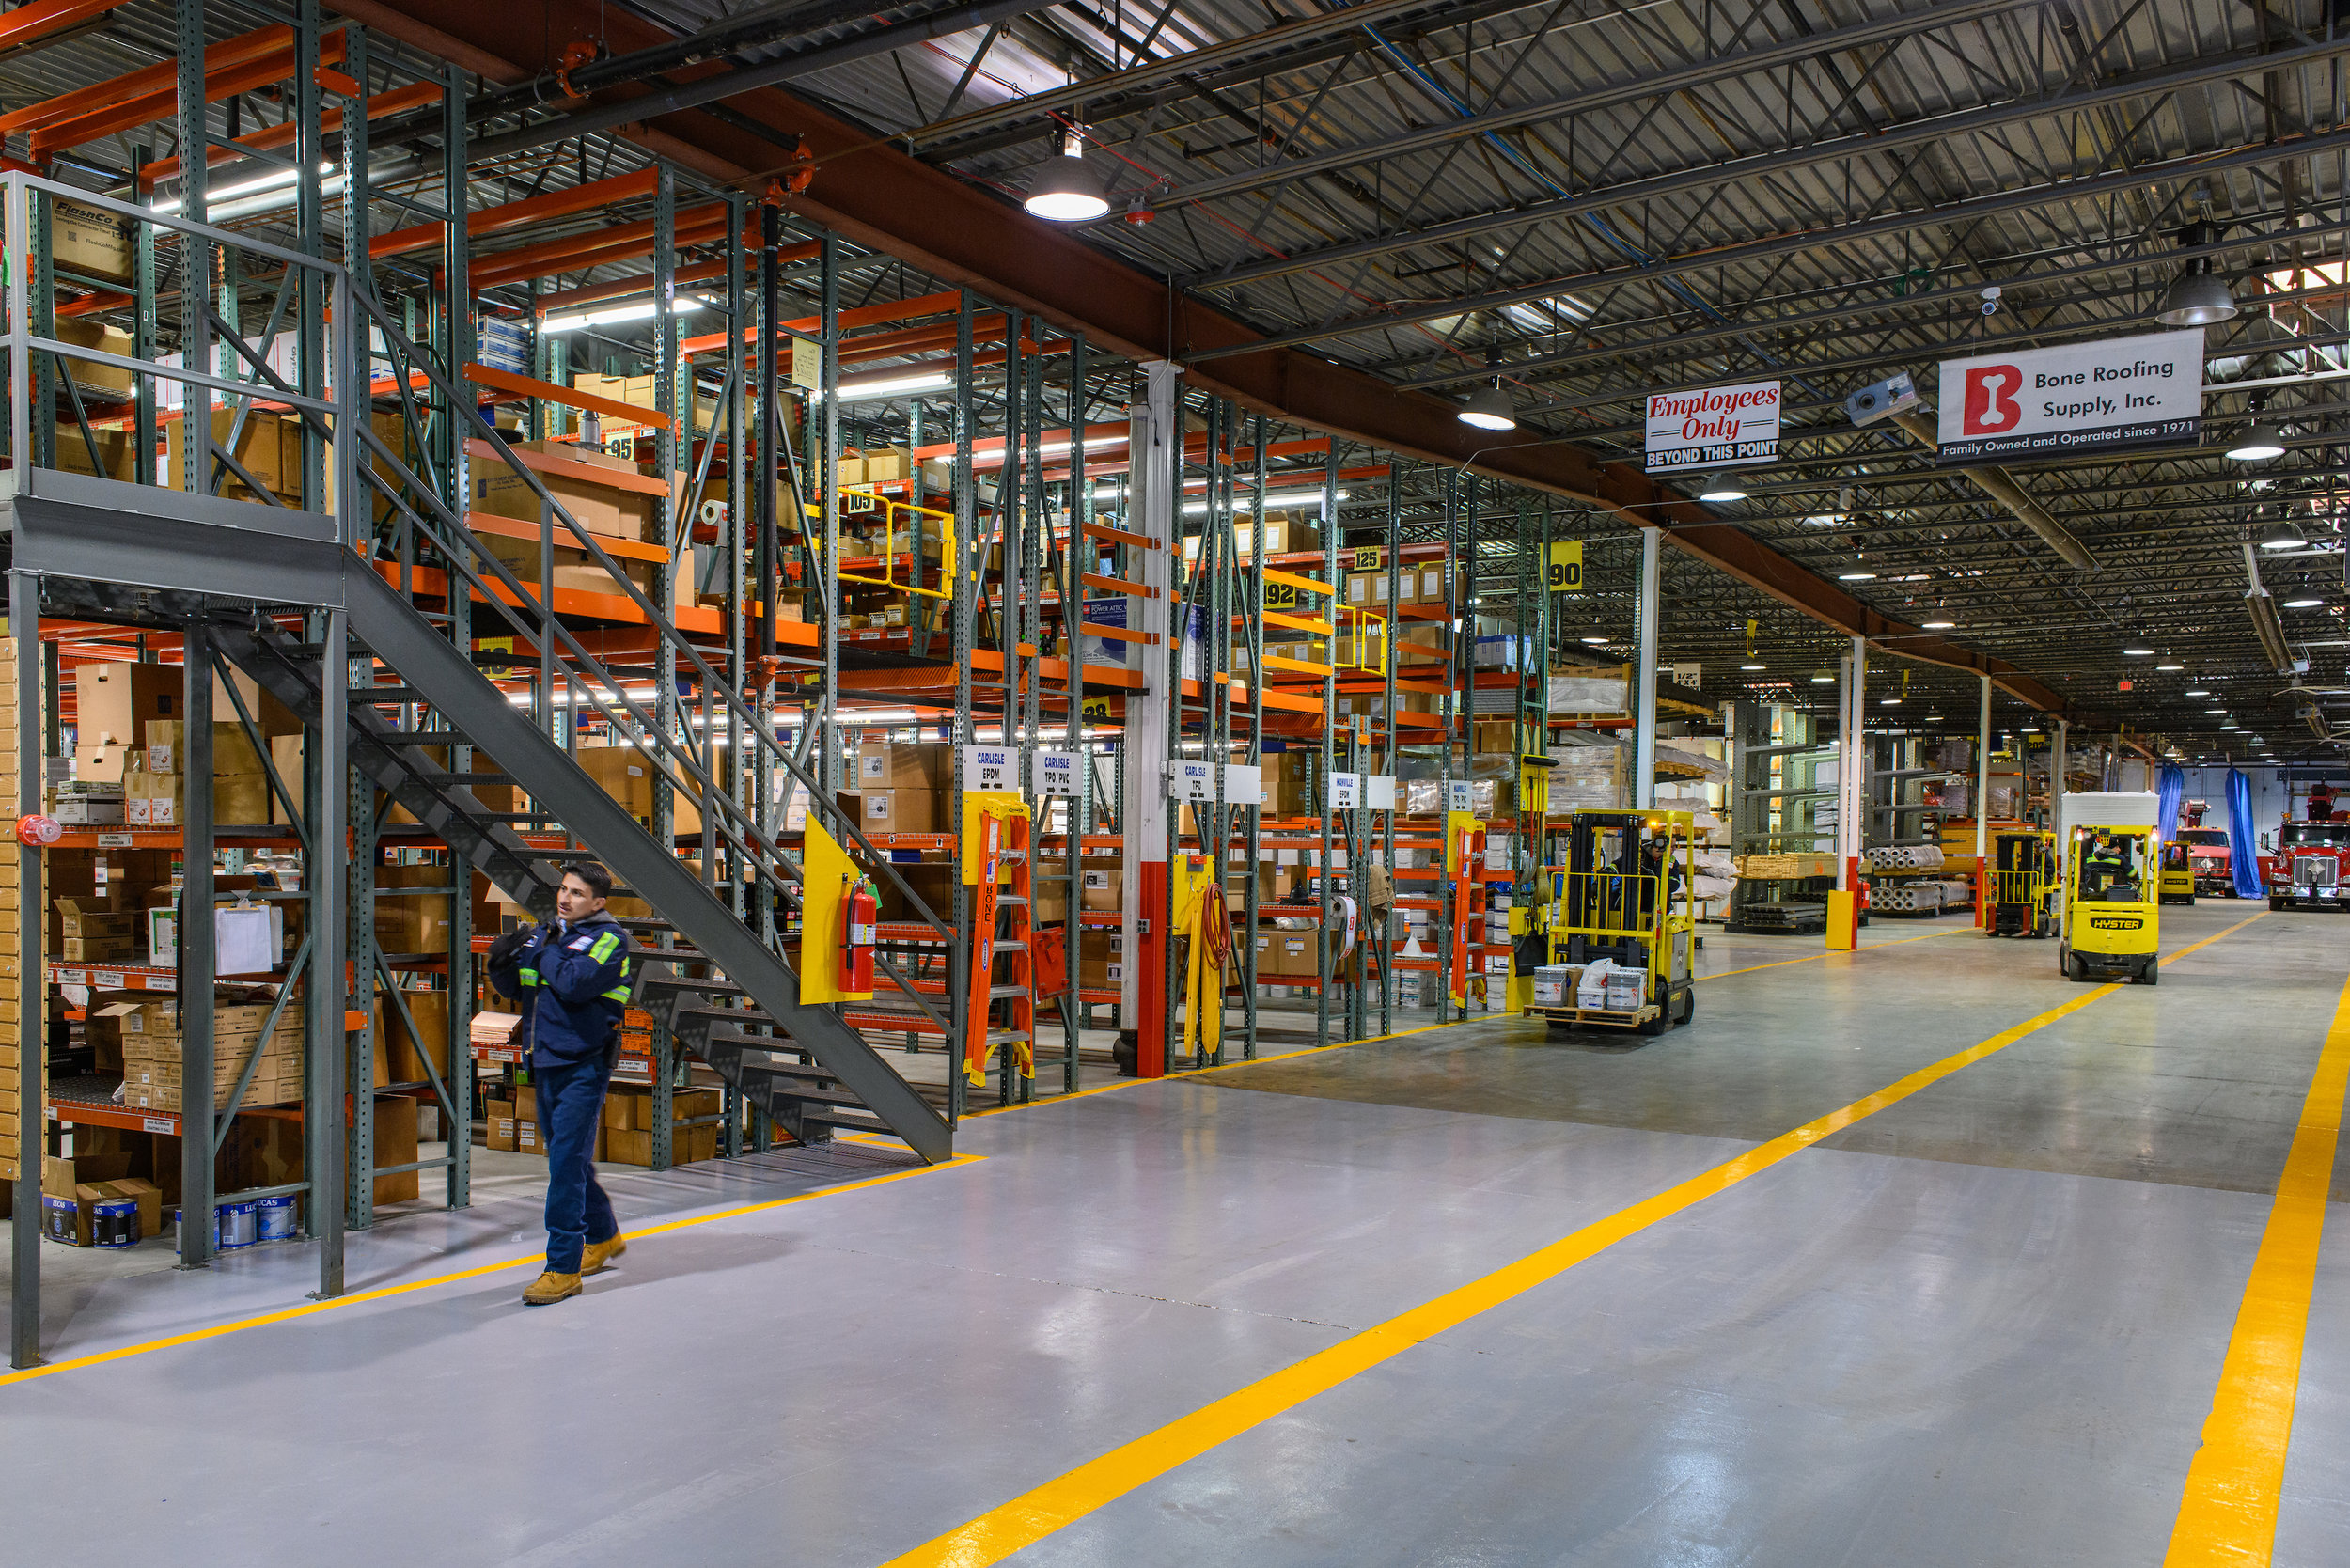 Warehouse - Opened in 2014, our new Villa Park warehouse is over 80,000 sq. feet. We stock nearly 2,000 SKUs, with plenty of special and custom order requests, as well.Our warehouse has over 600 zones, leading to an extremely organized facility that ensures our warehouse team is pulling the correct material. We invest within our warehouse by putting cleanliness and organization first and foremost.All items are labeled and in their proper places making it easy for our team to keep products easily accessible and clean from dirt and dust that other supply companies seem not to prioritize.